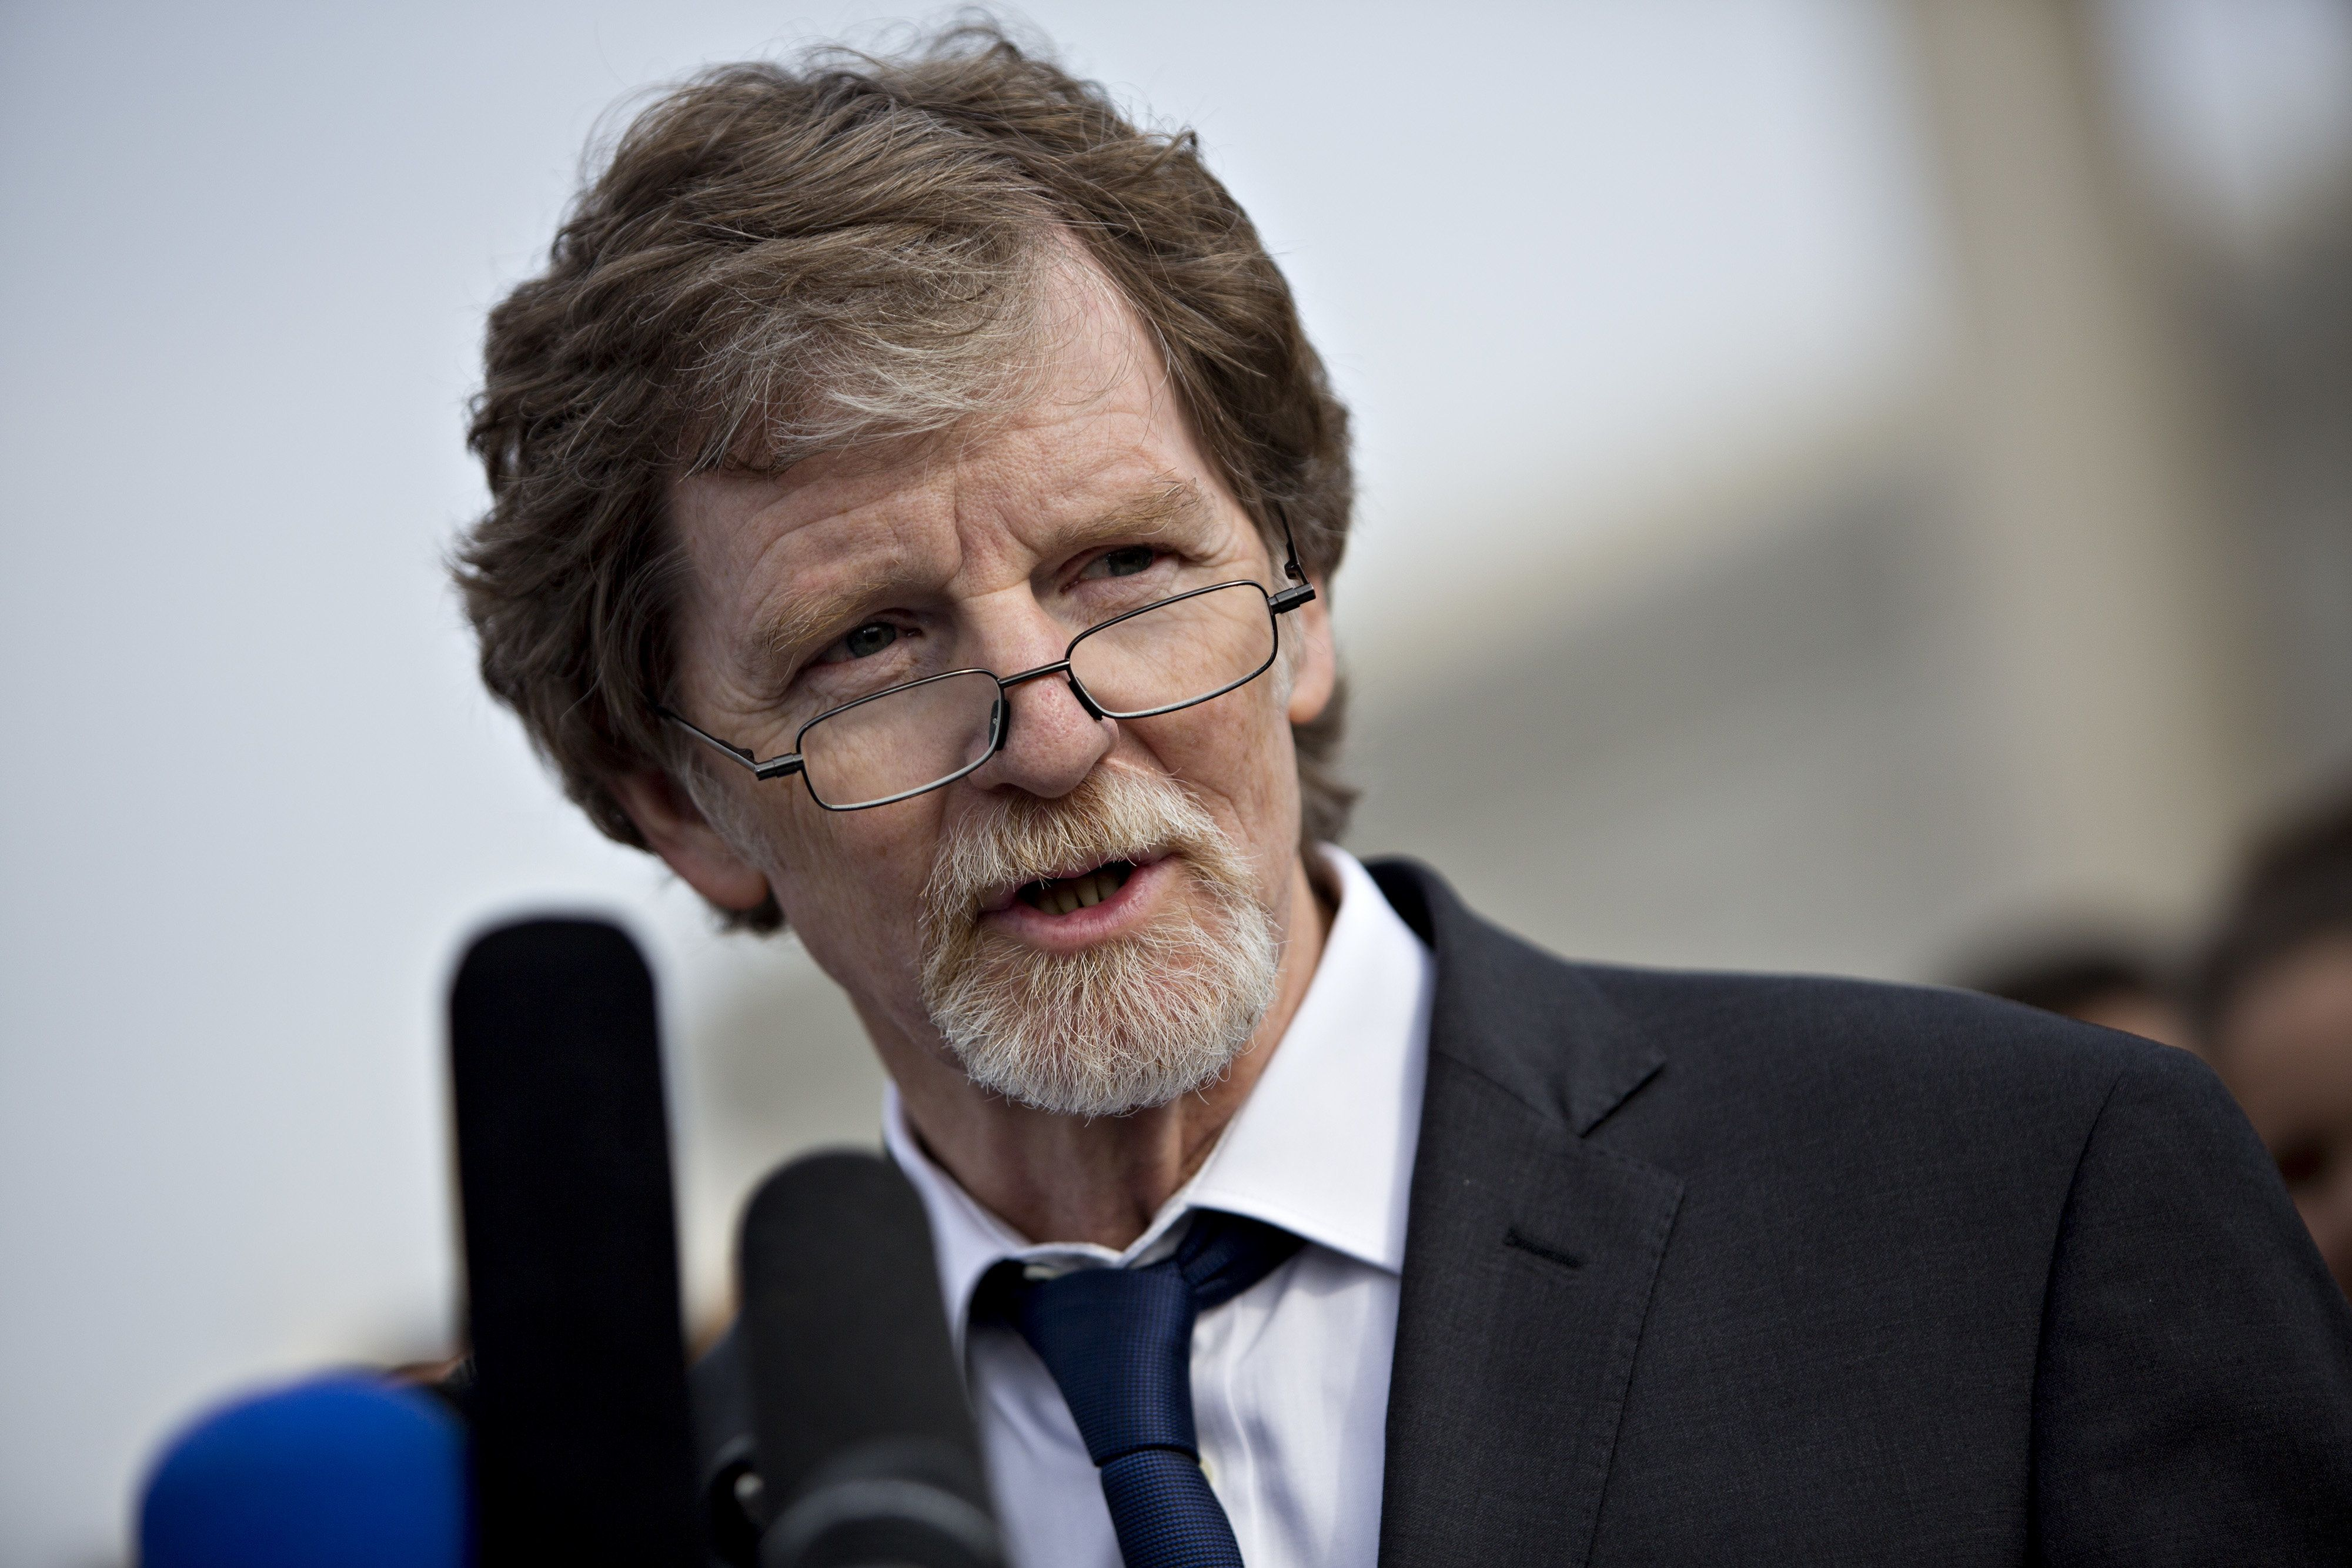 Jack Phillips, owner of Masterpiece Cakeshop, speaks to members of the media after U.S. Supreme Court arguments in the Masterpiece Cakeshop v. Colorado Civil Rights Commission case in Washington, D.C., U.S., on Tuesday, Dec. 5, 2017. A pivotal justice sent mixed messages as the Supreme Court heard arguments in the case of a Colorado baker who refuses to make cakes for same-sex weddings. The state has ordered him to either make cakes for gay weddings or stop making wedding cakes at all. Photographer: Andrew Harrer/Bloomberg via Getty Images